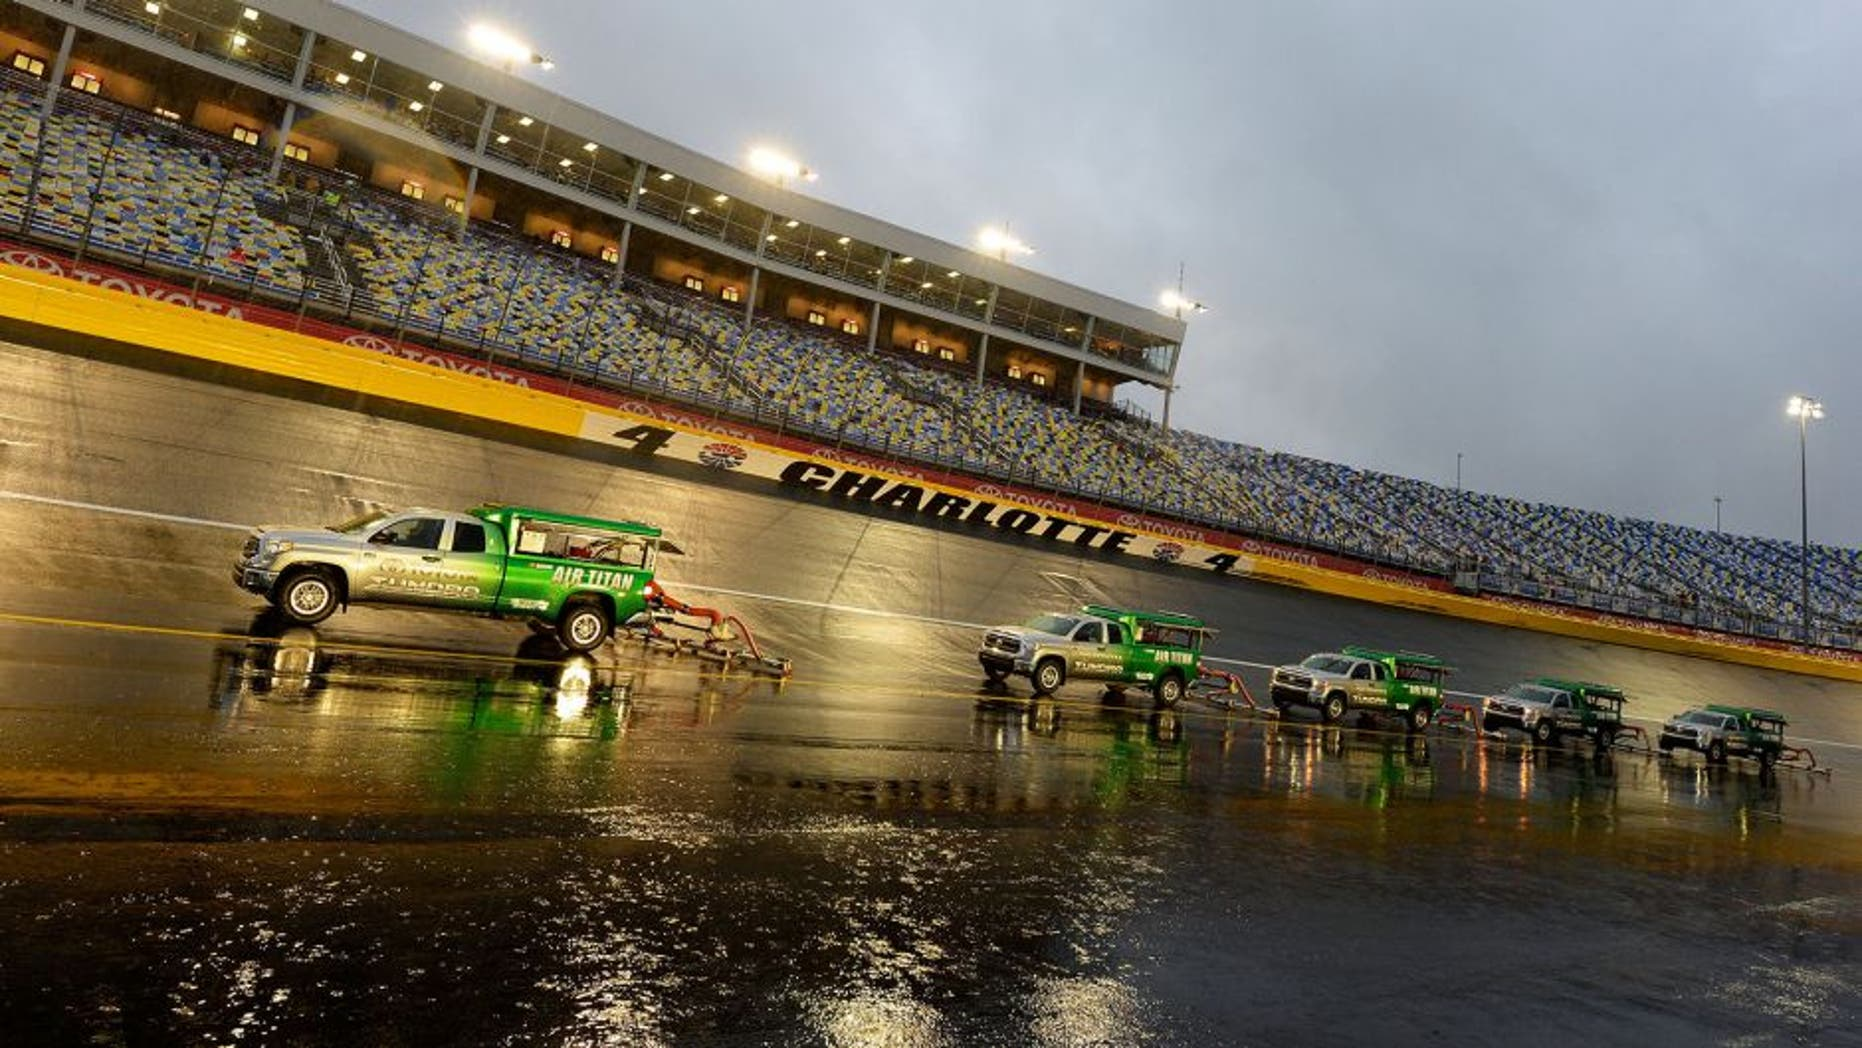 CHARLOTTE, NC - OCTOBER 10: Air-titans sit ready during a rain delay for the NASCAR Sprint Cup Series Bank of America 500 at Charlotte Motor Speedway on October 10, 2015 in Charlotte, North Carolina. (Photo by Robert Laberge/Getty Images)